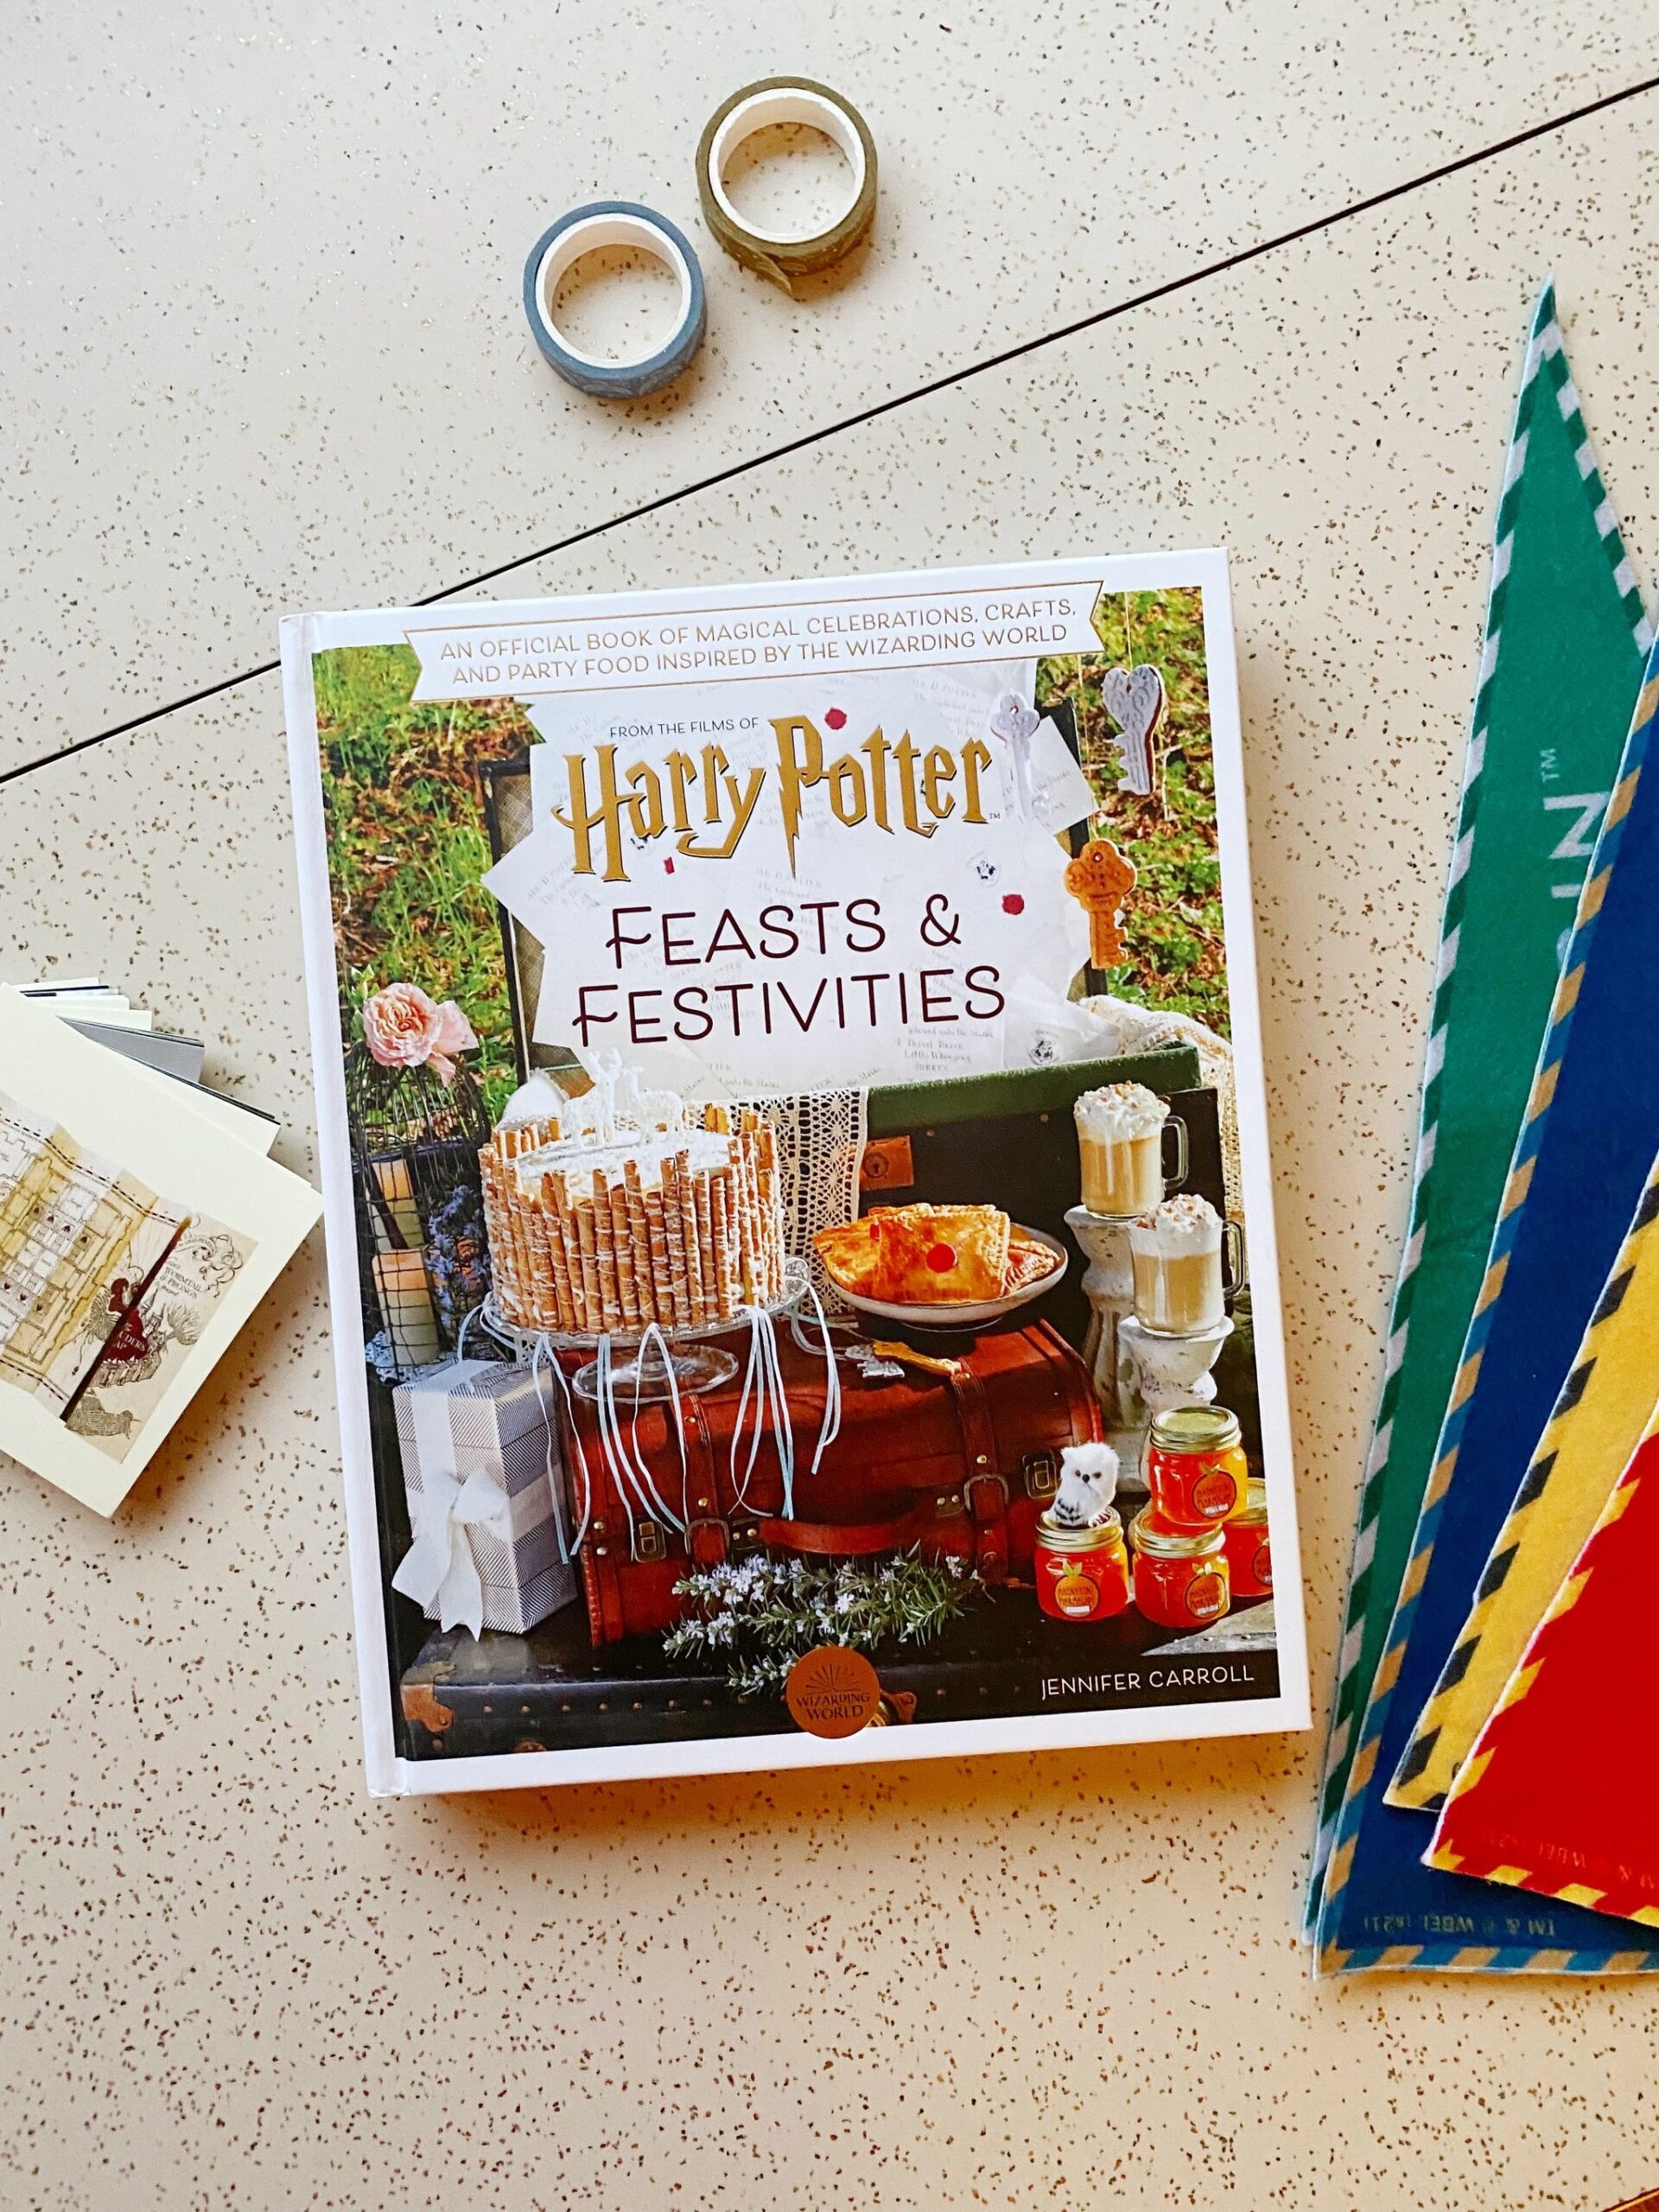 Feasts and Festivities book